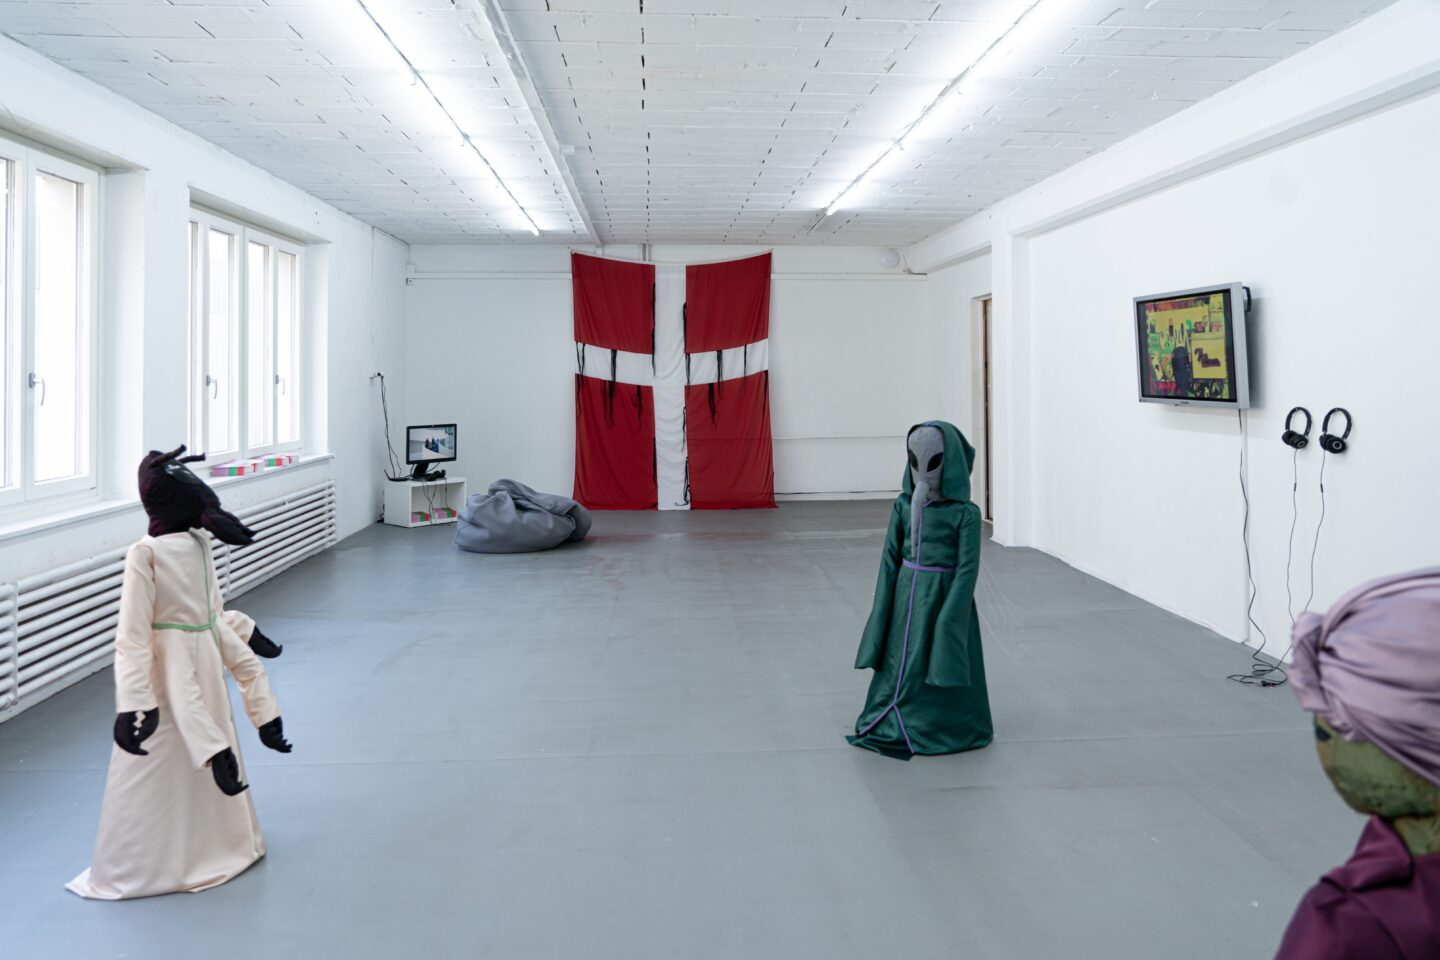 Exhibition View Groupshow «Le Soin des Possibles» at 1.1, Basel, 2019 / Photo: Jelly Luise / Courtesy: the artists and 1.1